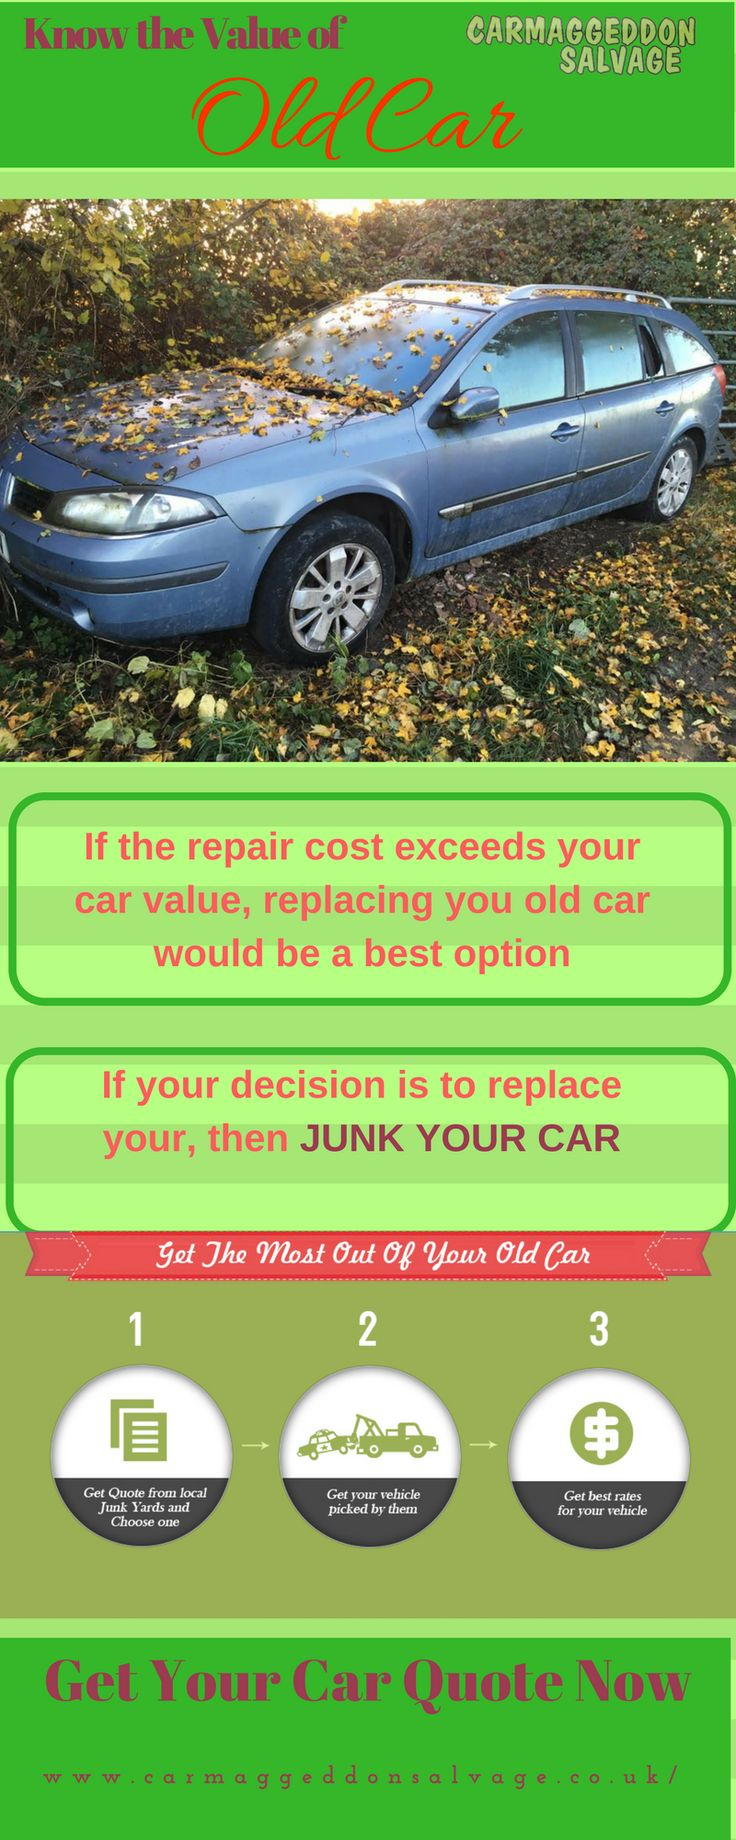 The 21 best Scrap & Salvage Car Quotes images on Pinterest | Car ...